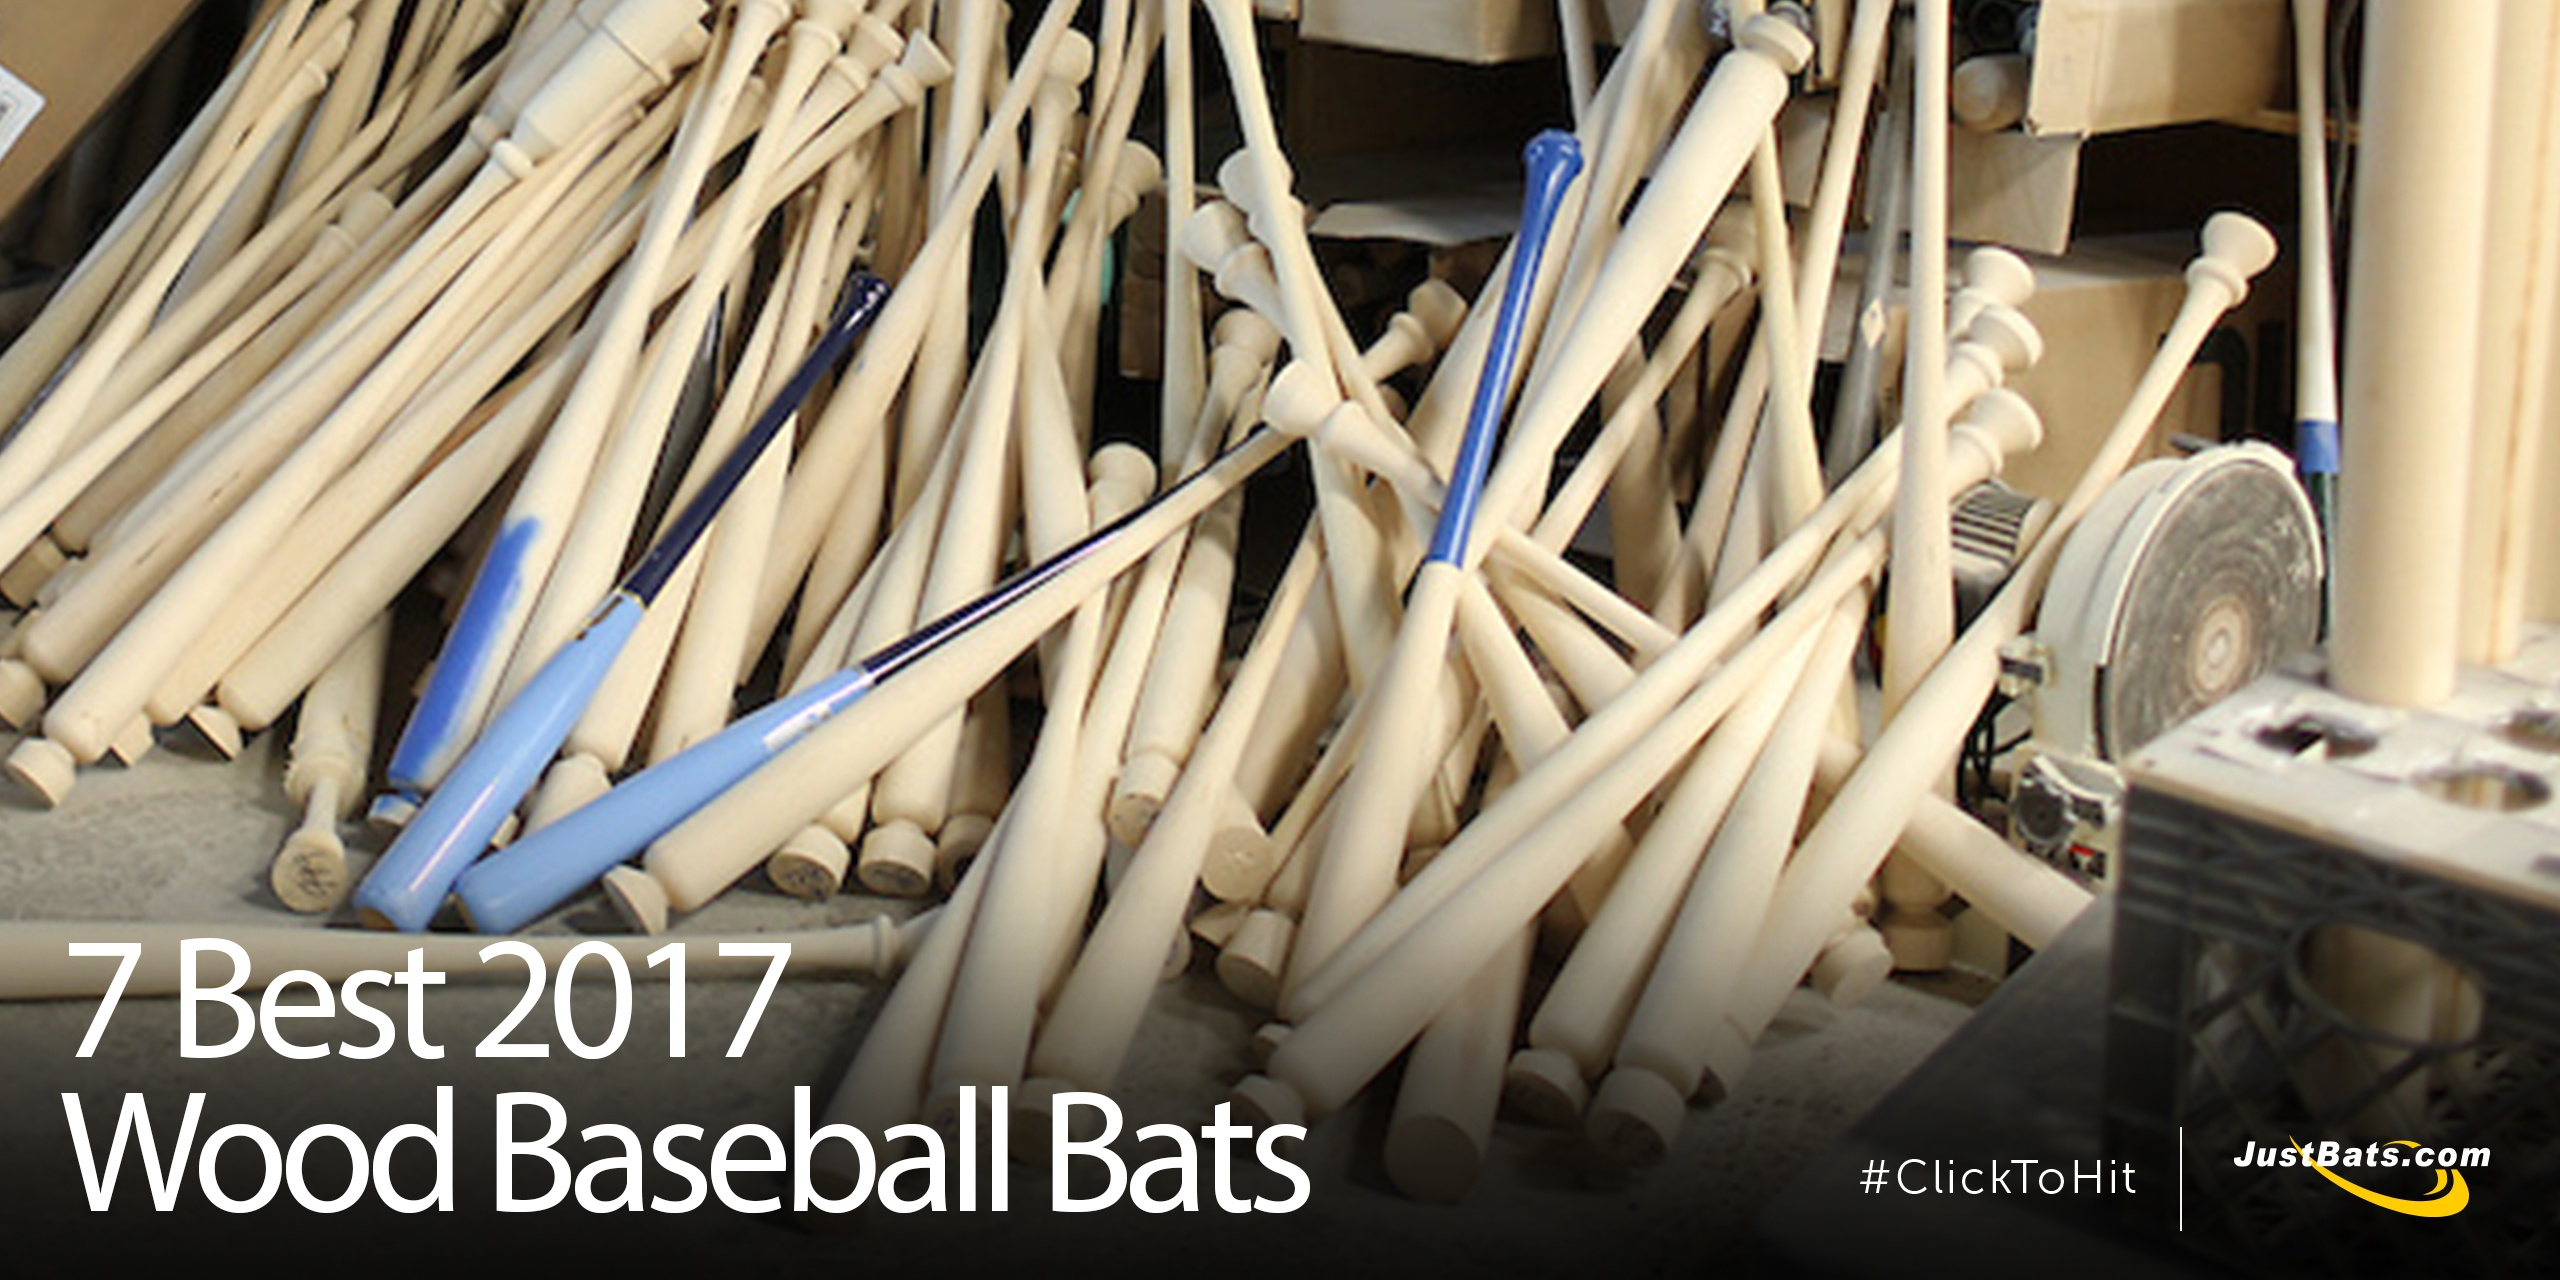 7 Best Wood Bats - Blog.jpg